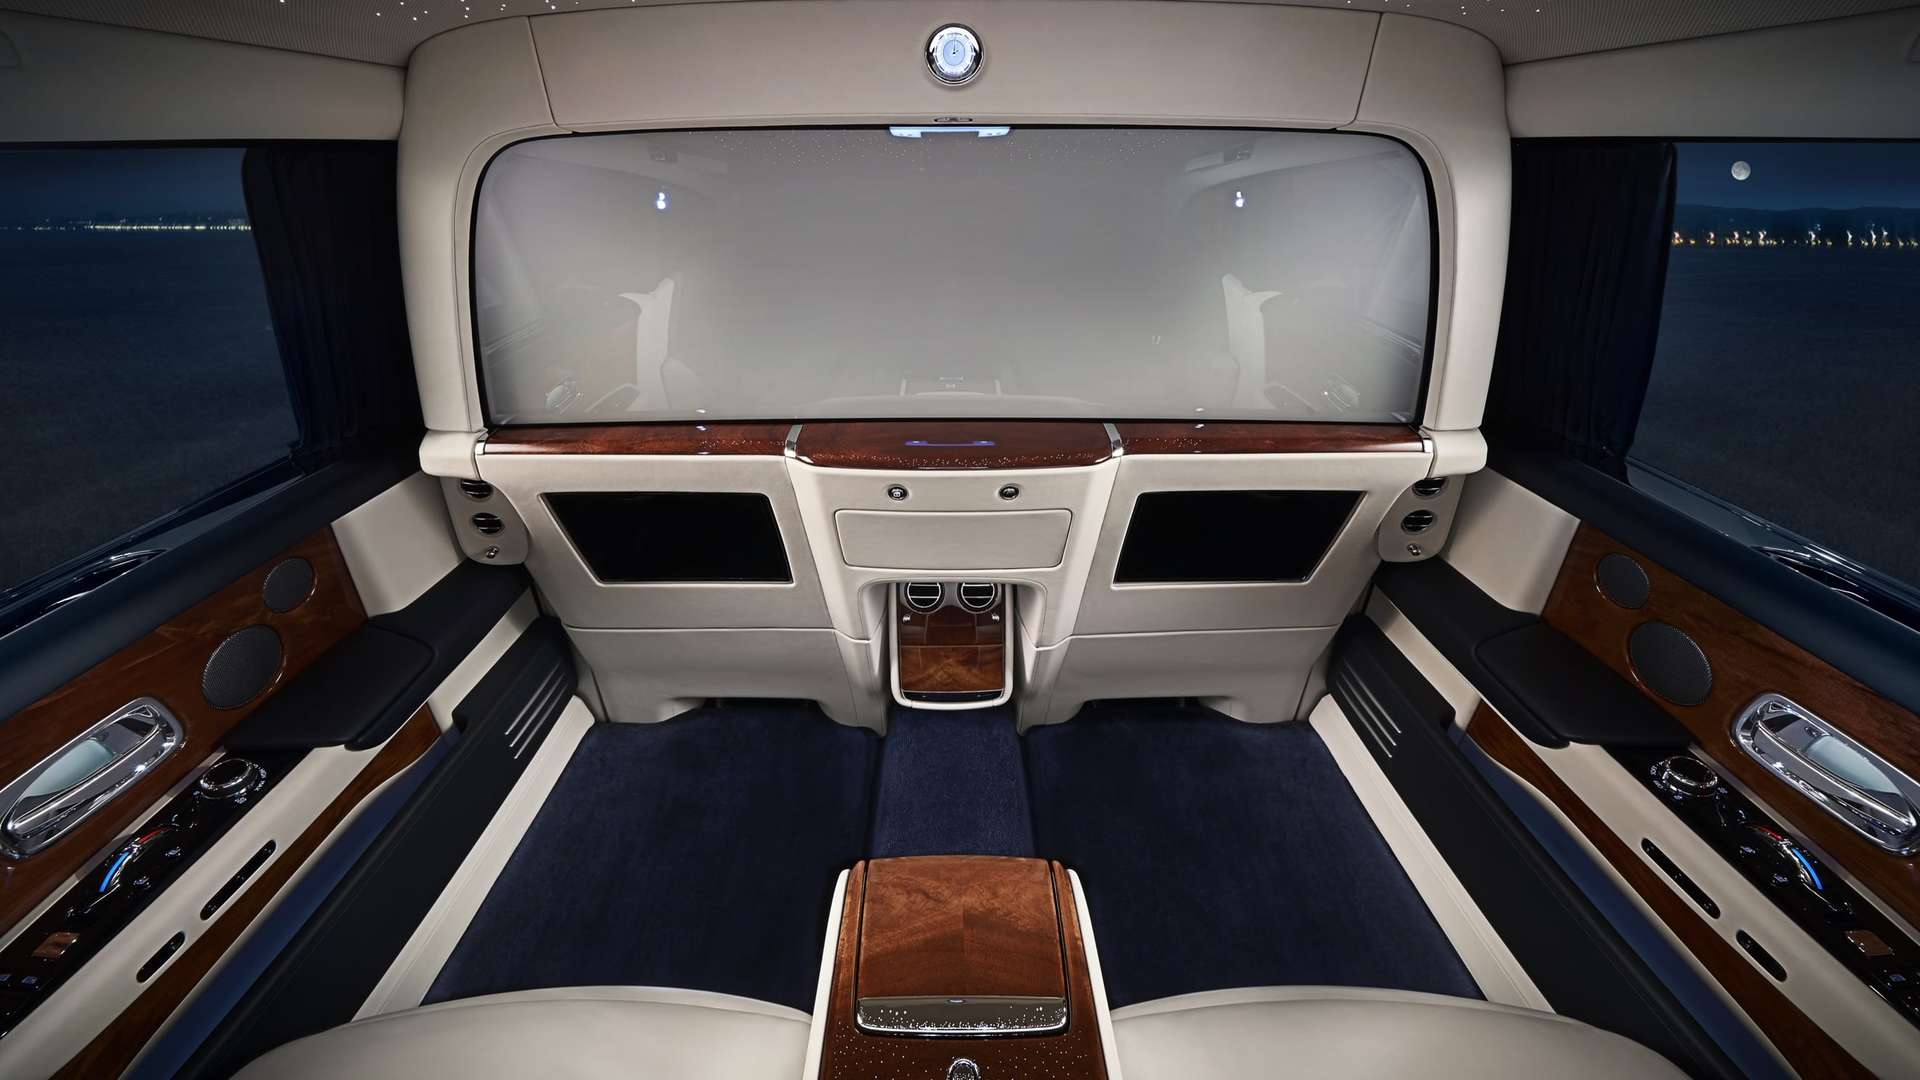 Privacy screen inside the Phantom Extended Wheelbase